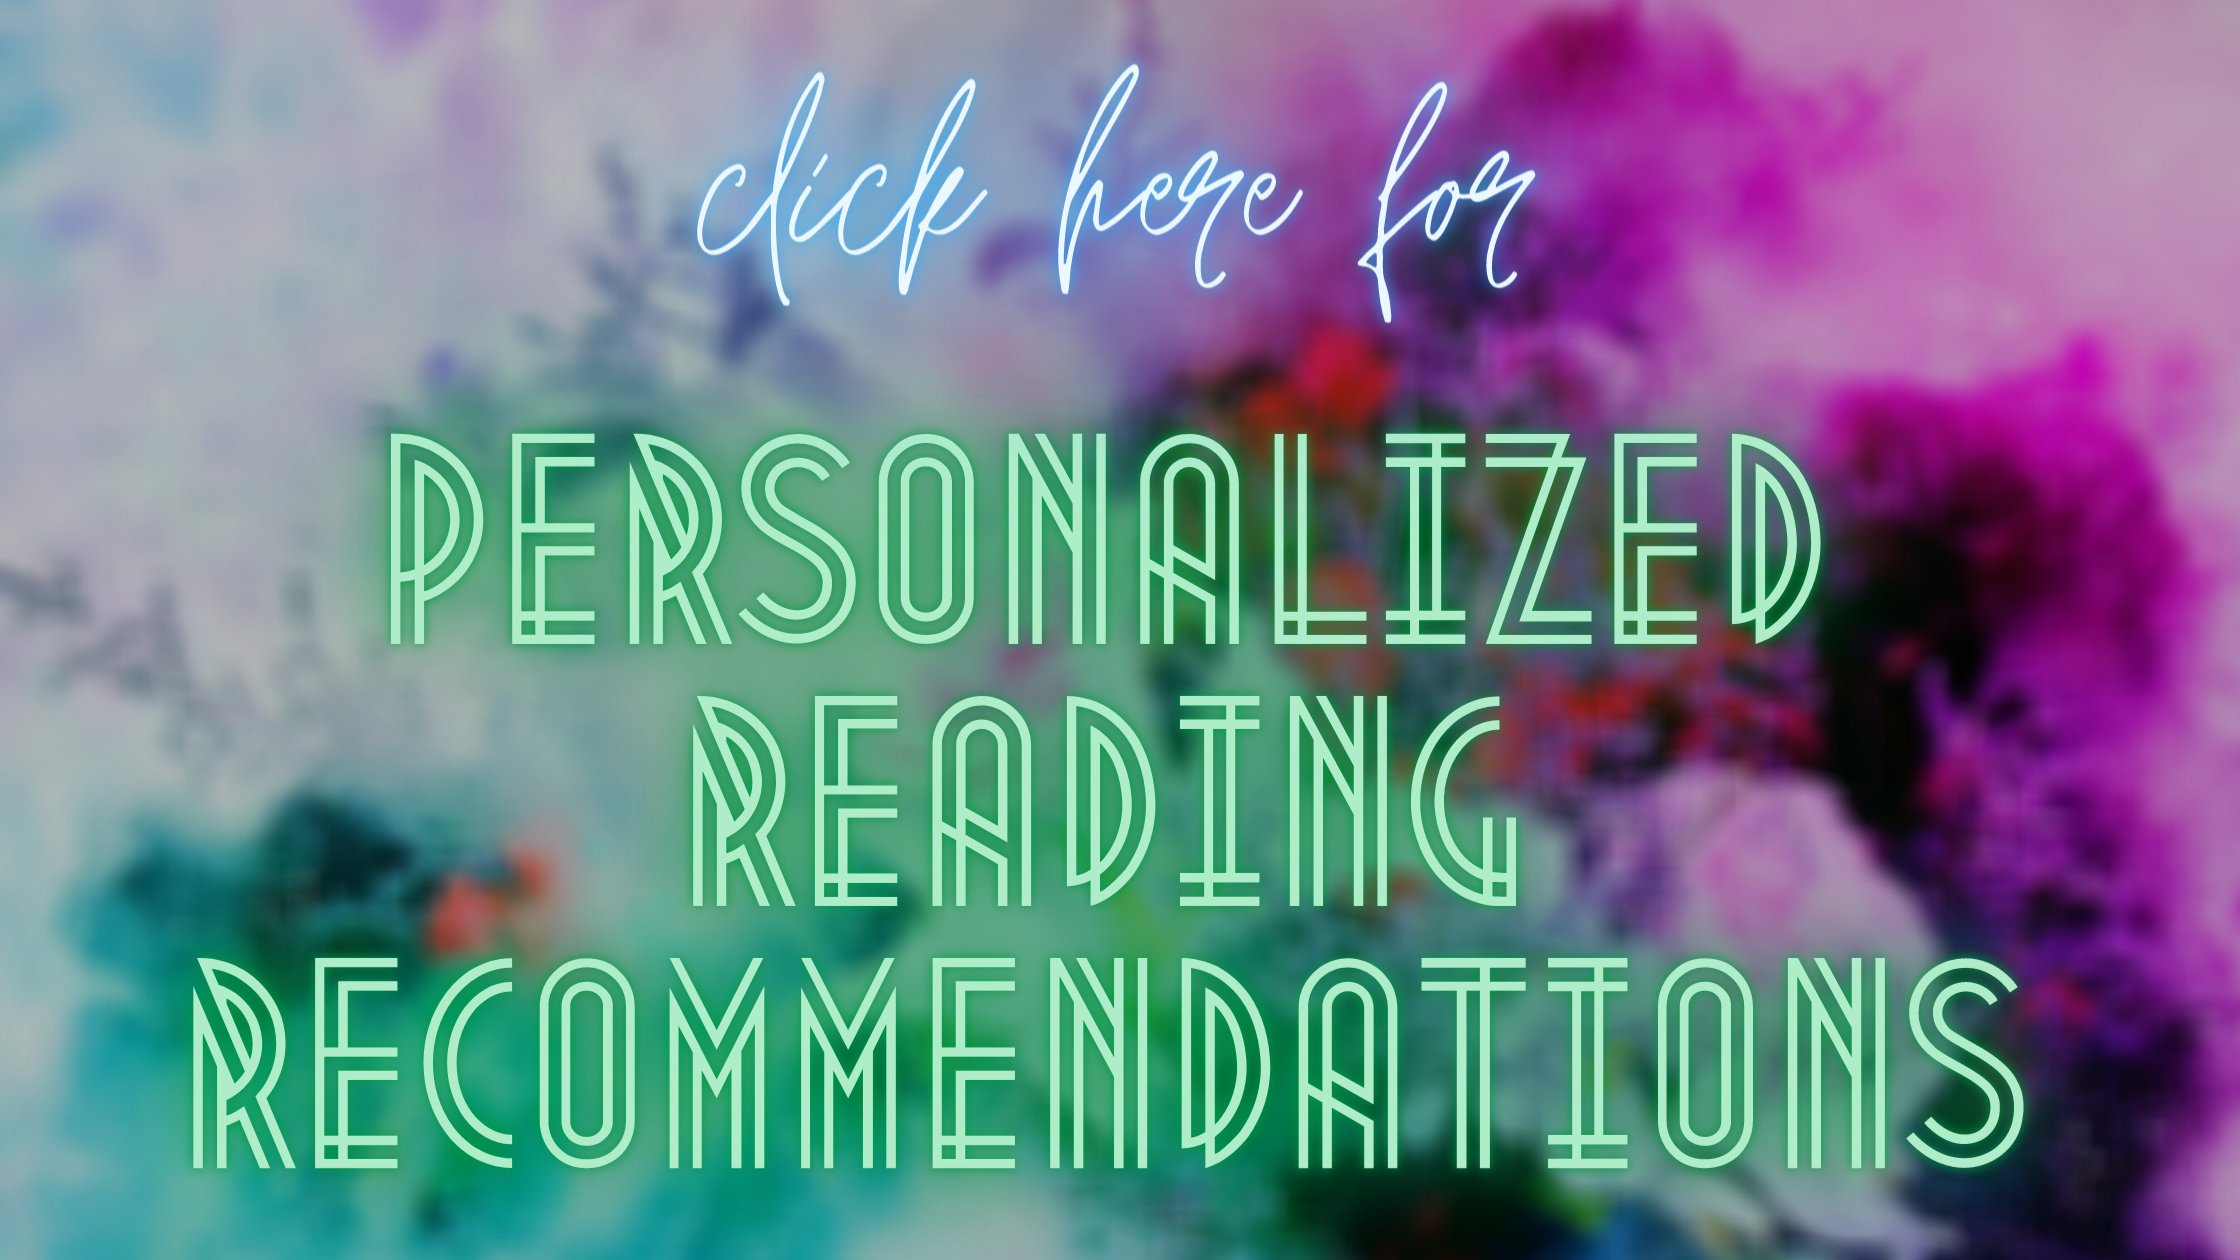 Teens Personalized Reading Recommendations